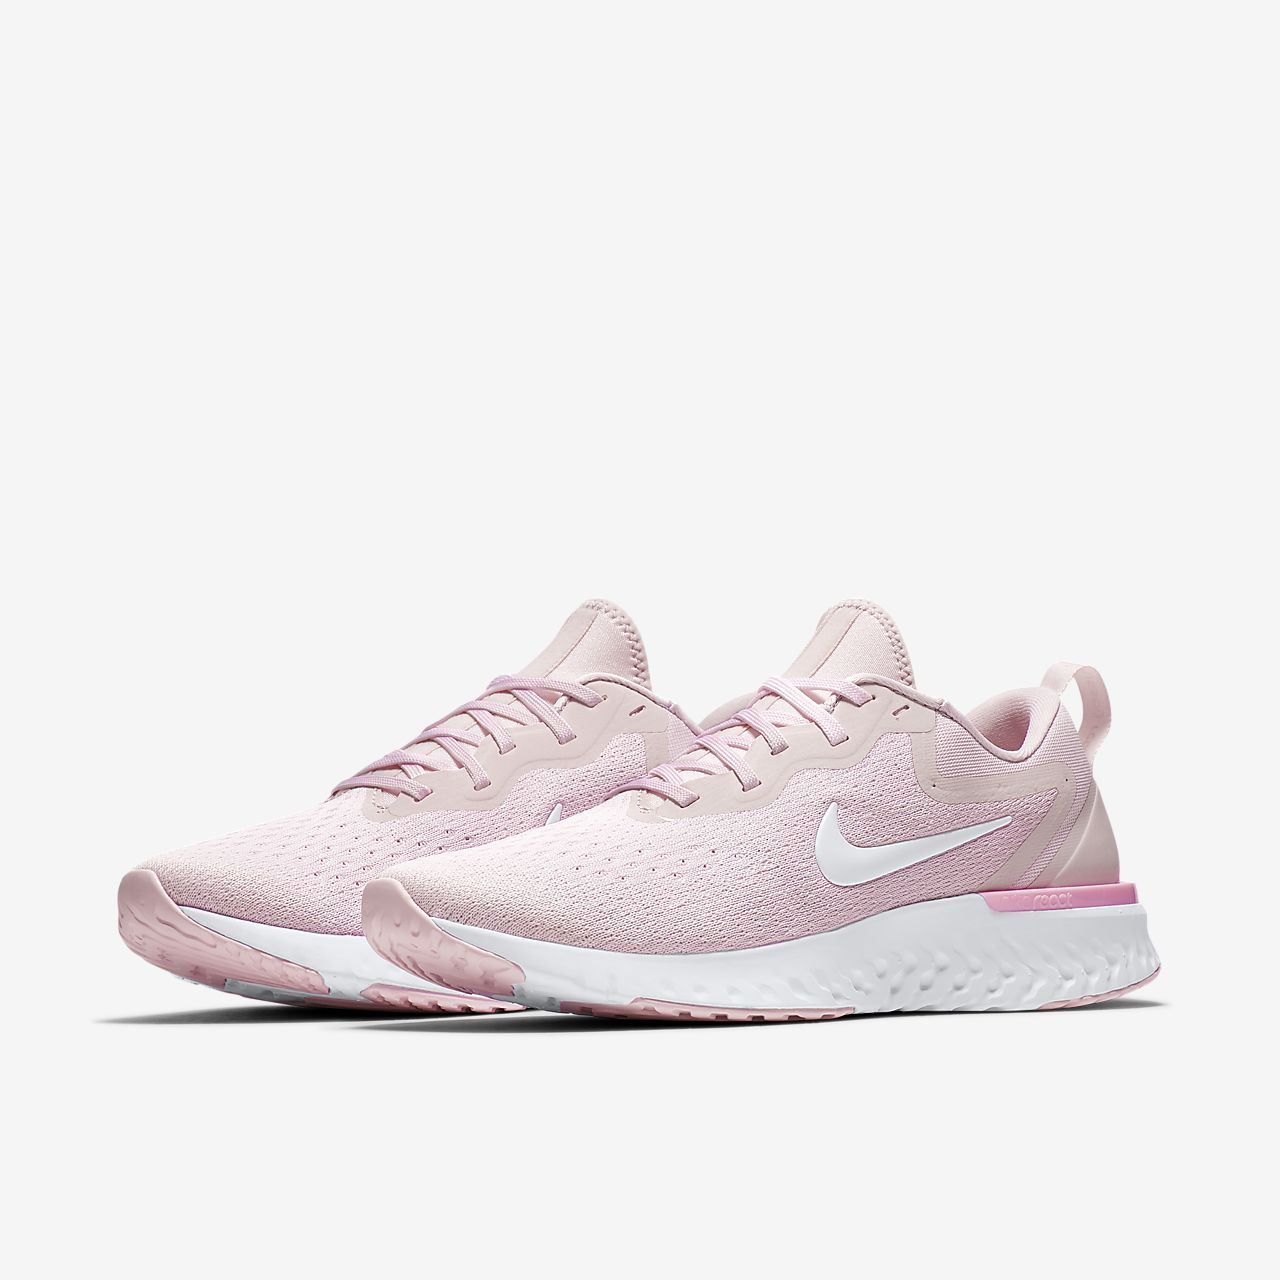 new arrival fcbef 27c6c Odyssey React Women's Running Shoe in 2019 | Outfits | Pink ...